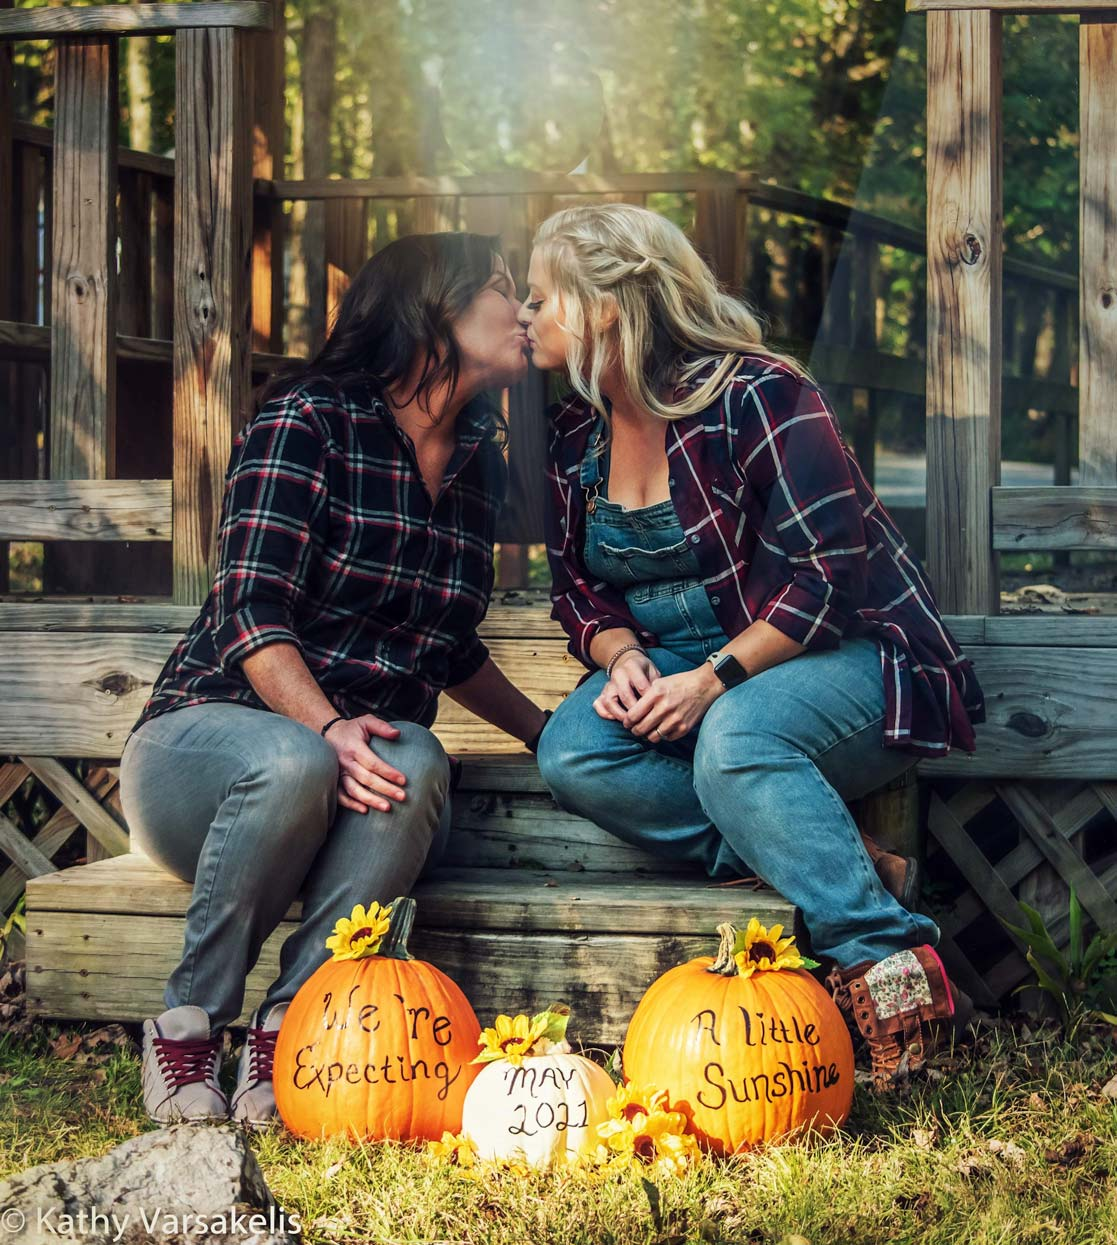 Wife and Wife dressed in flannel kissing above their baby announcement written on pumpkins.